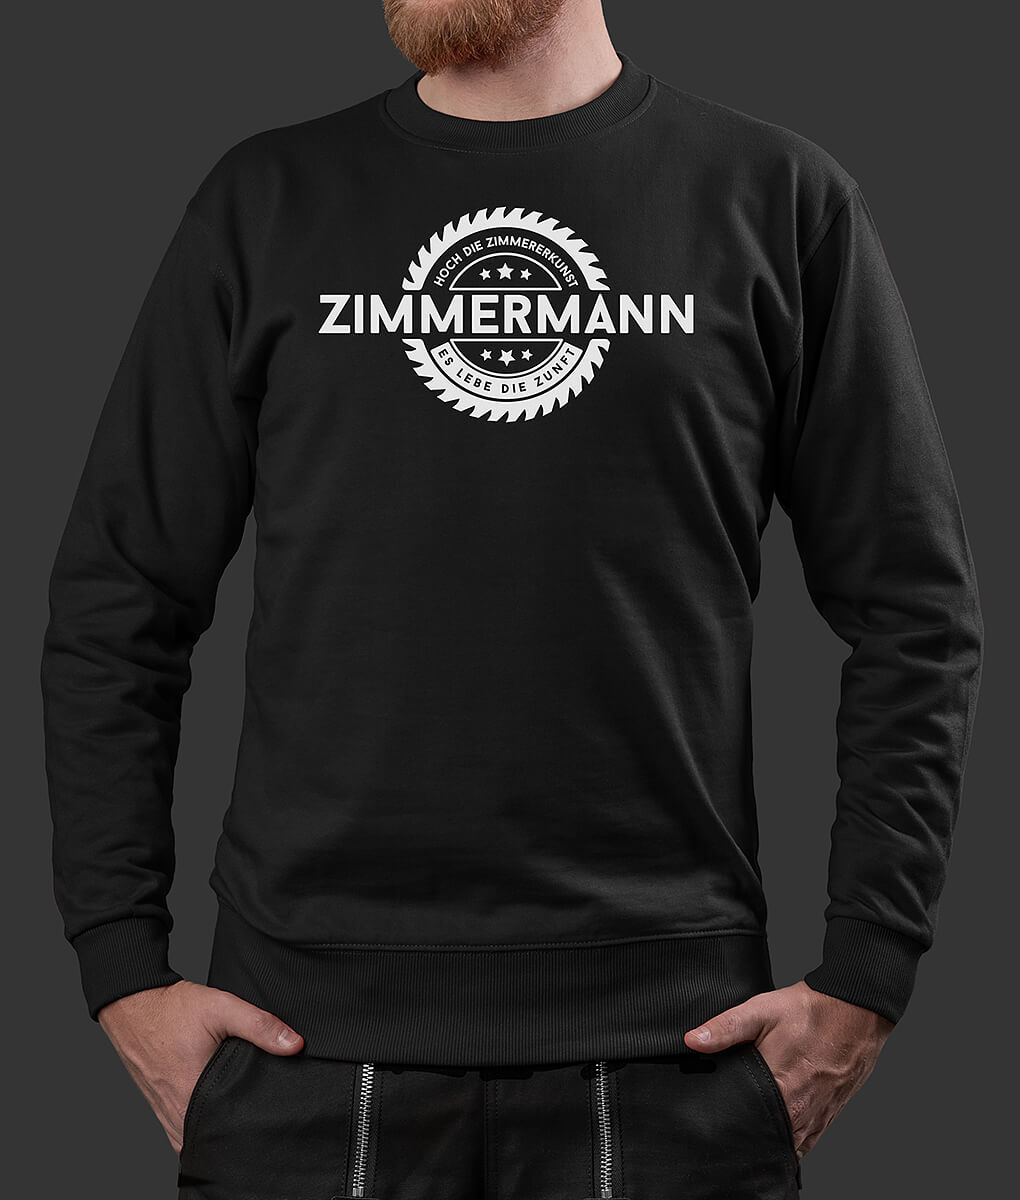 Sweater Stefan Säge Zimmermann